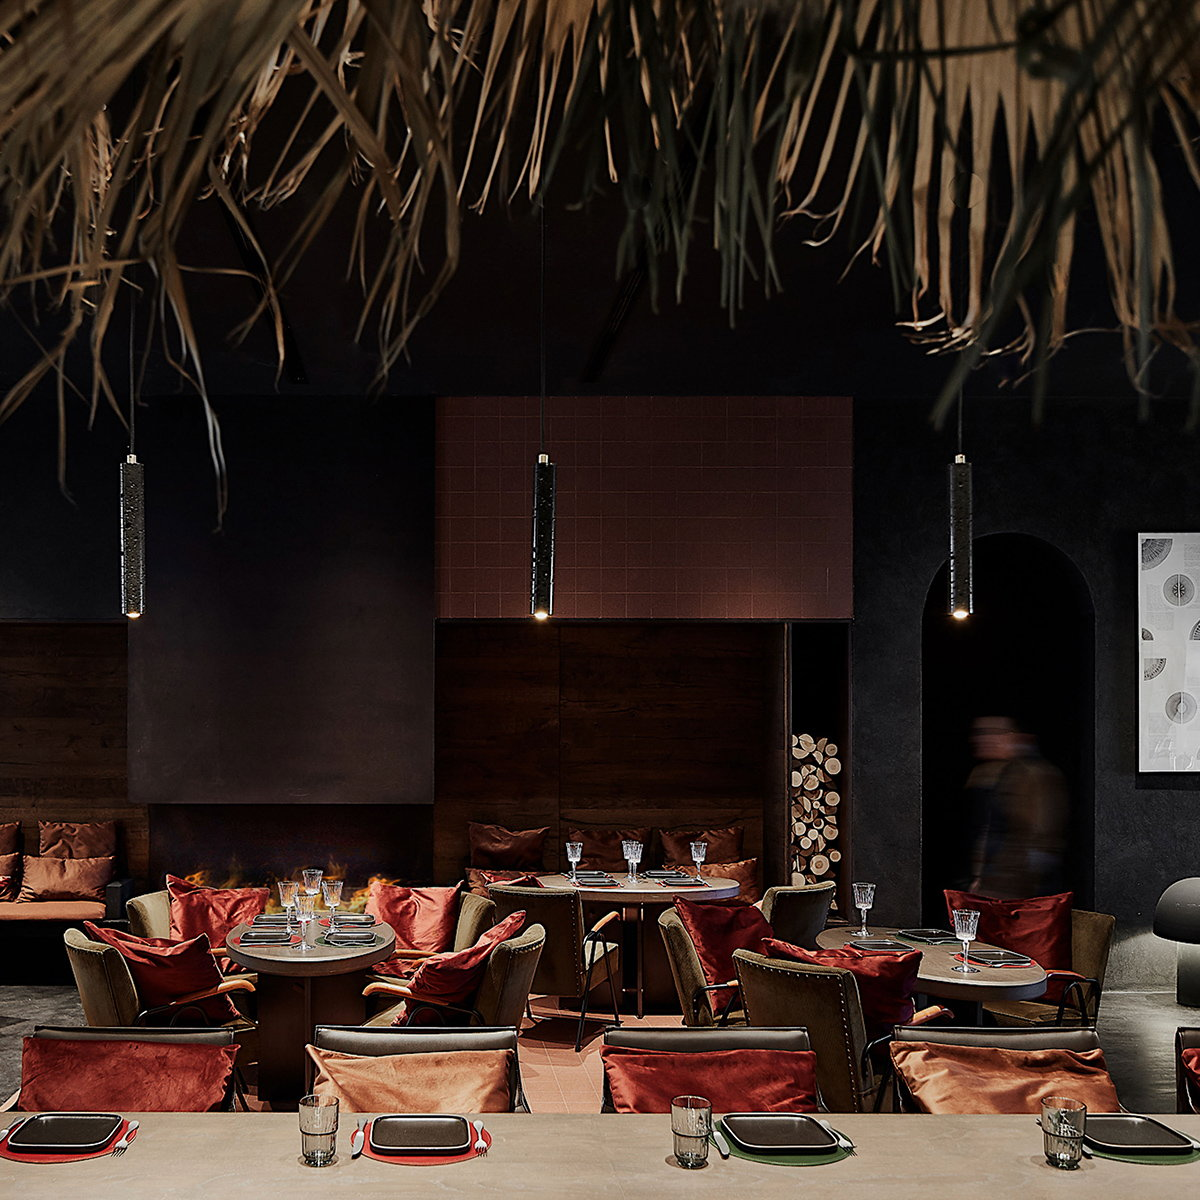 CHARCOHOL Restaurant and Cocktail Bar by STUDIO8